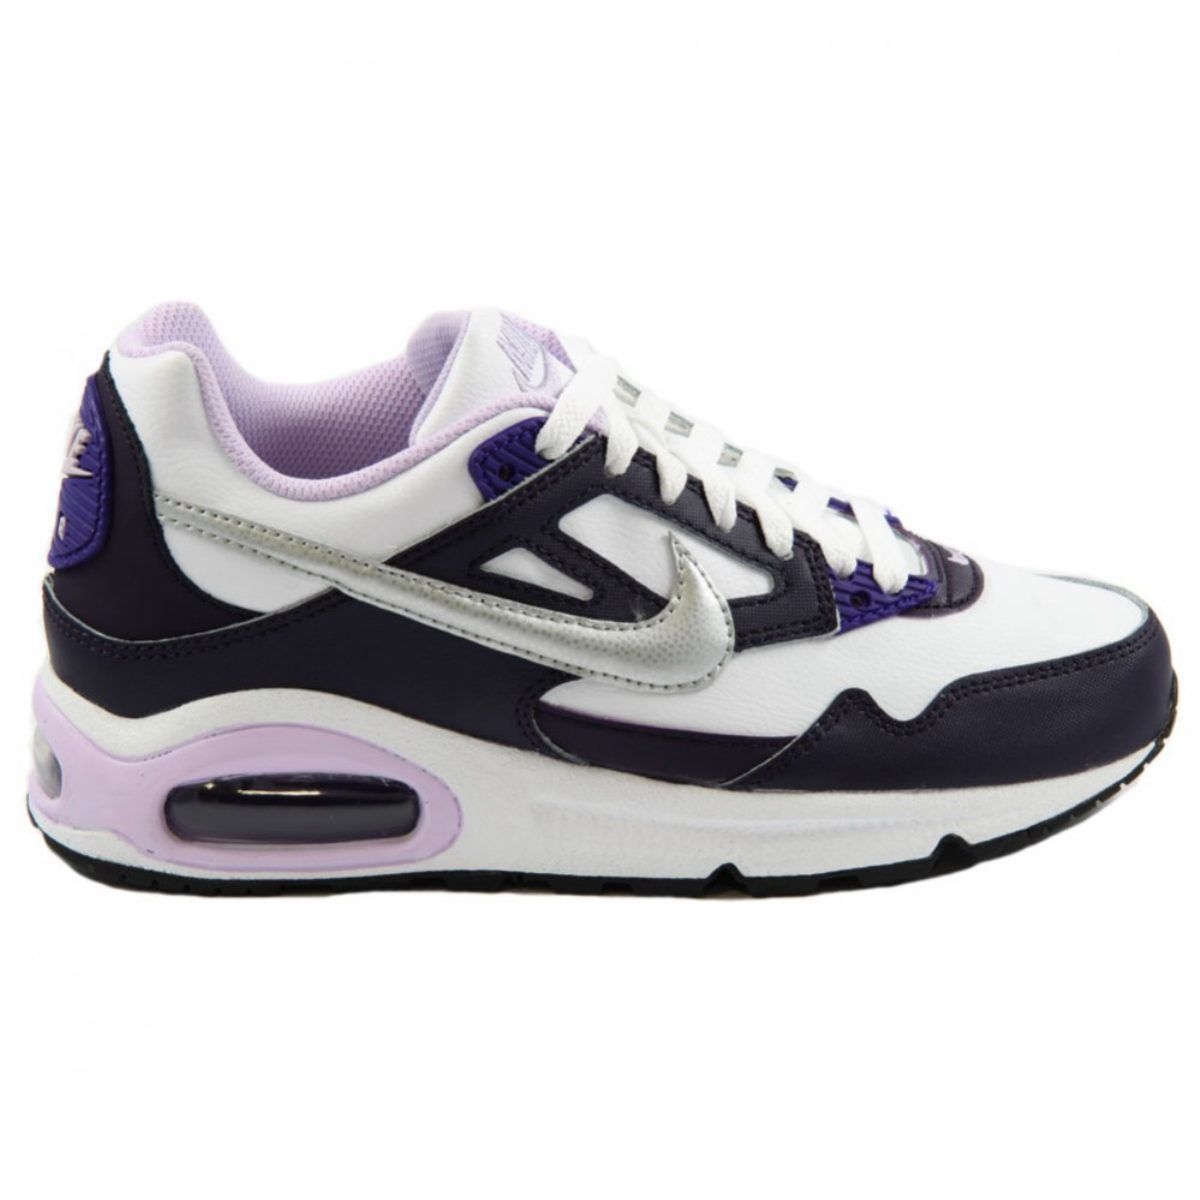 nike air max skyline turnschuhe sneaker damen weiss ebay. Black Bedroom Furniture Sets. Home Design Ideas